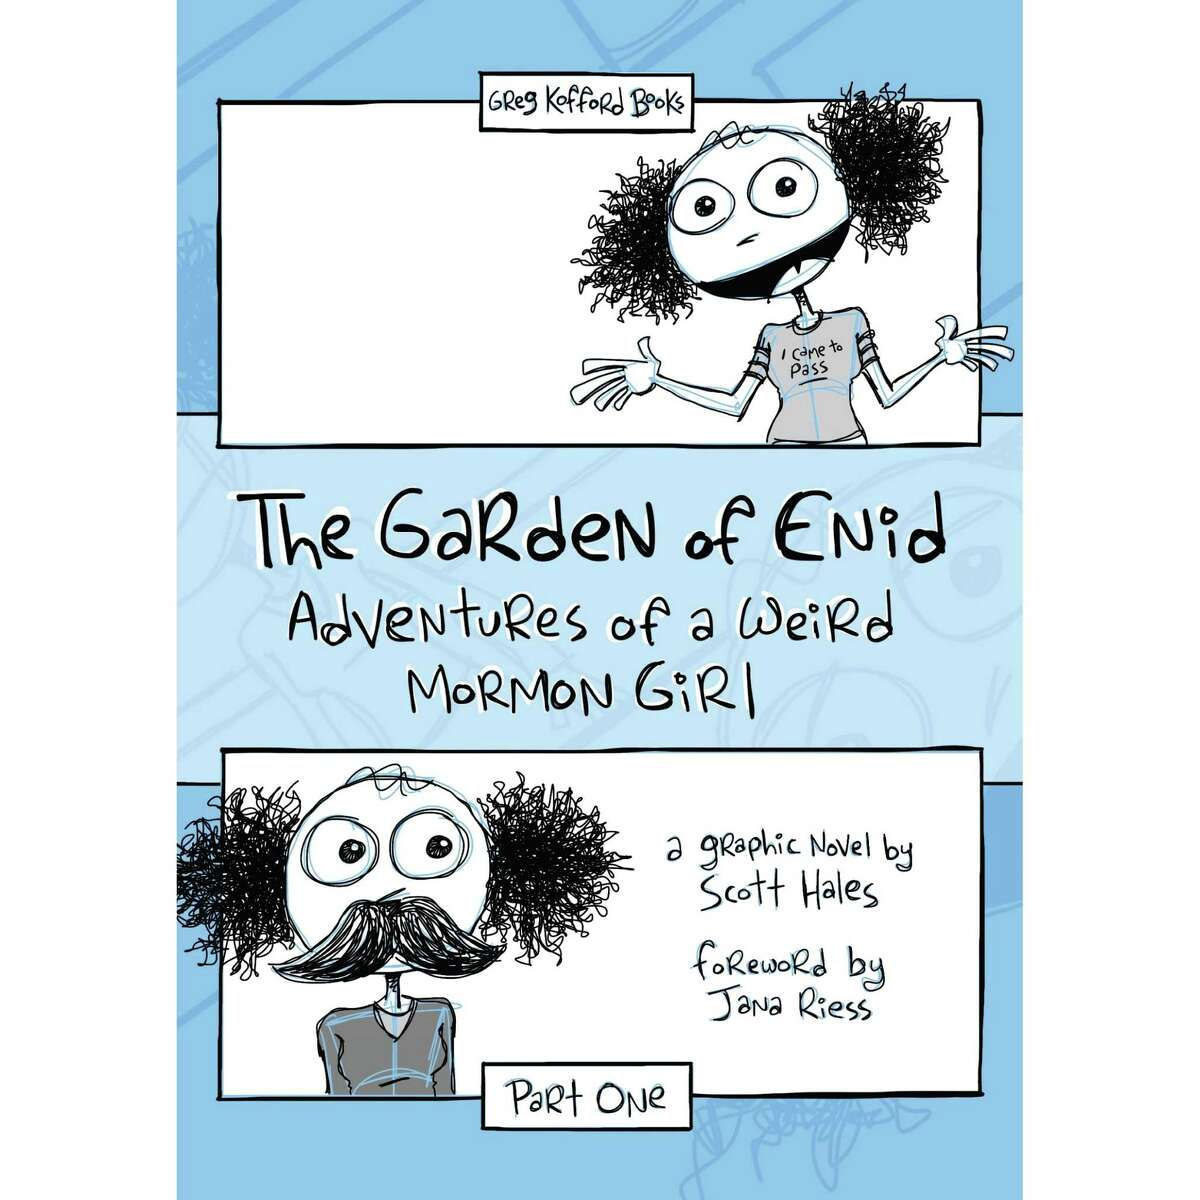 """The cover and a page of the graphic novel """"The Garden of Enid"""" by Scott Hales."""